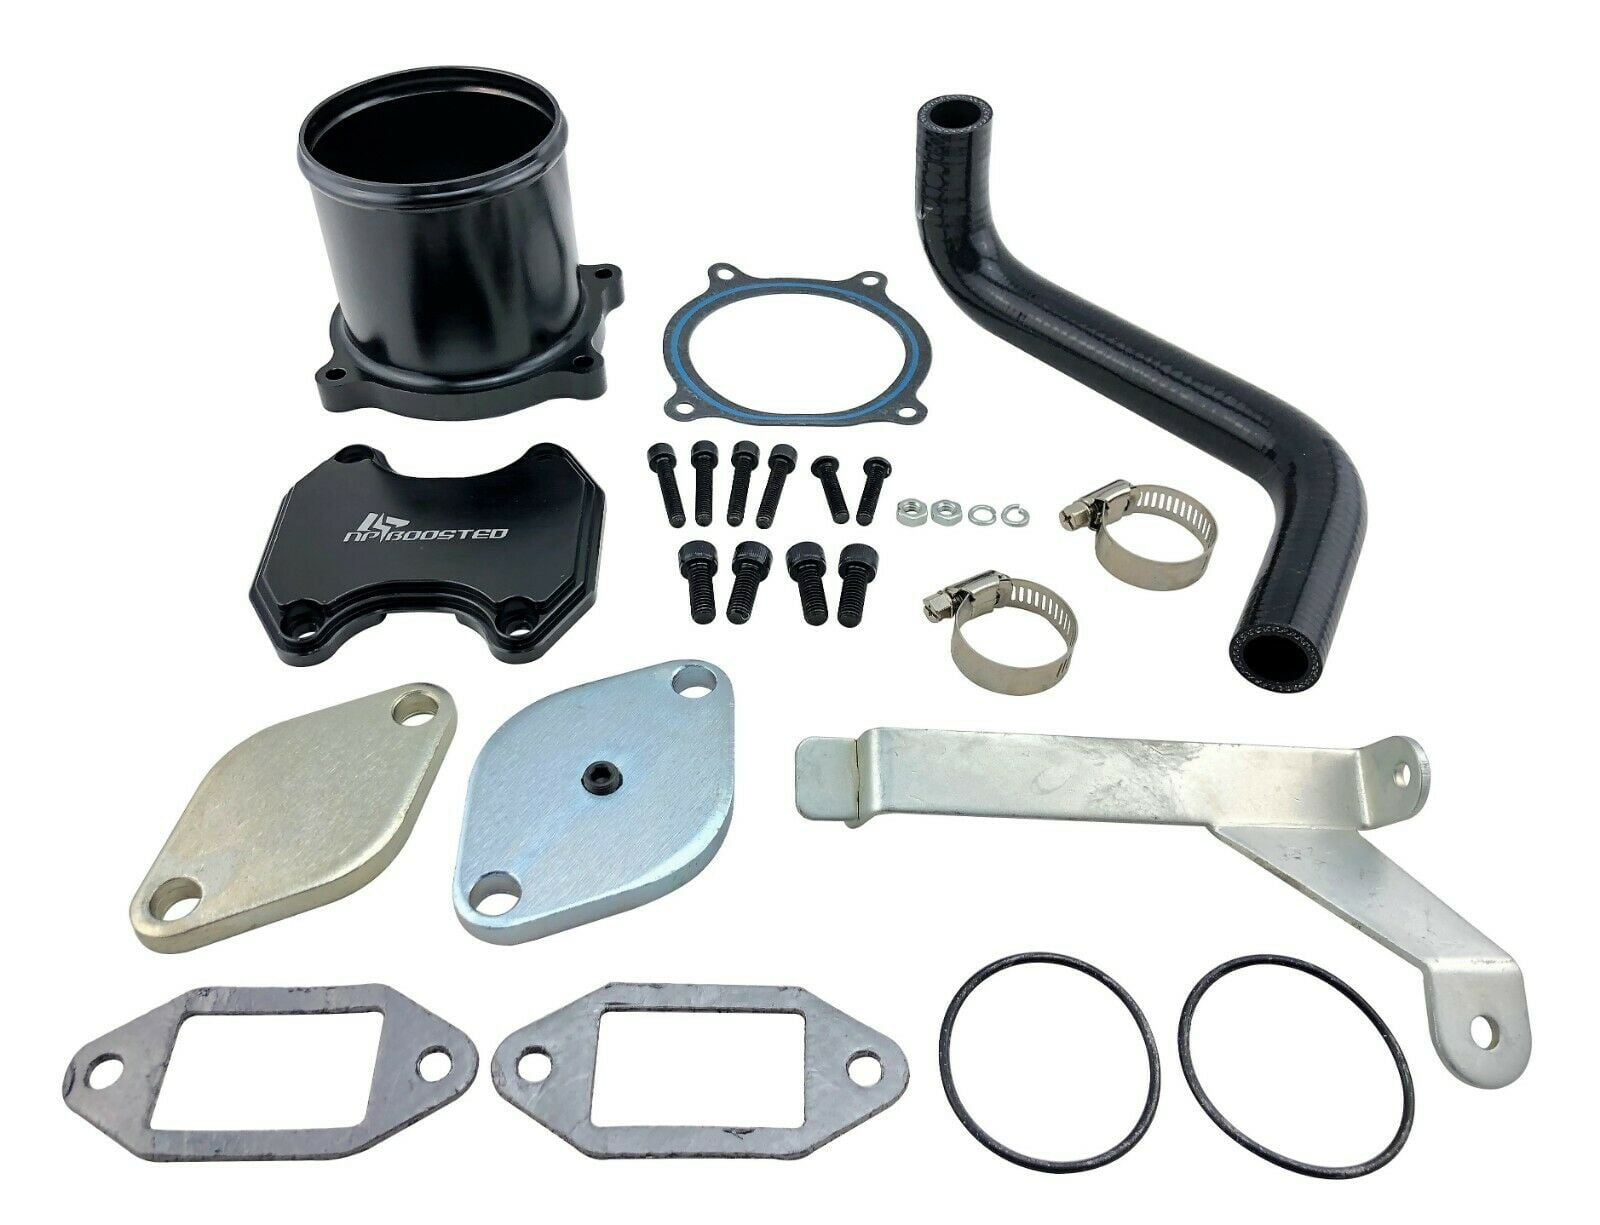 EGR removal kit for 2007.5-2009 6.7L Cummins